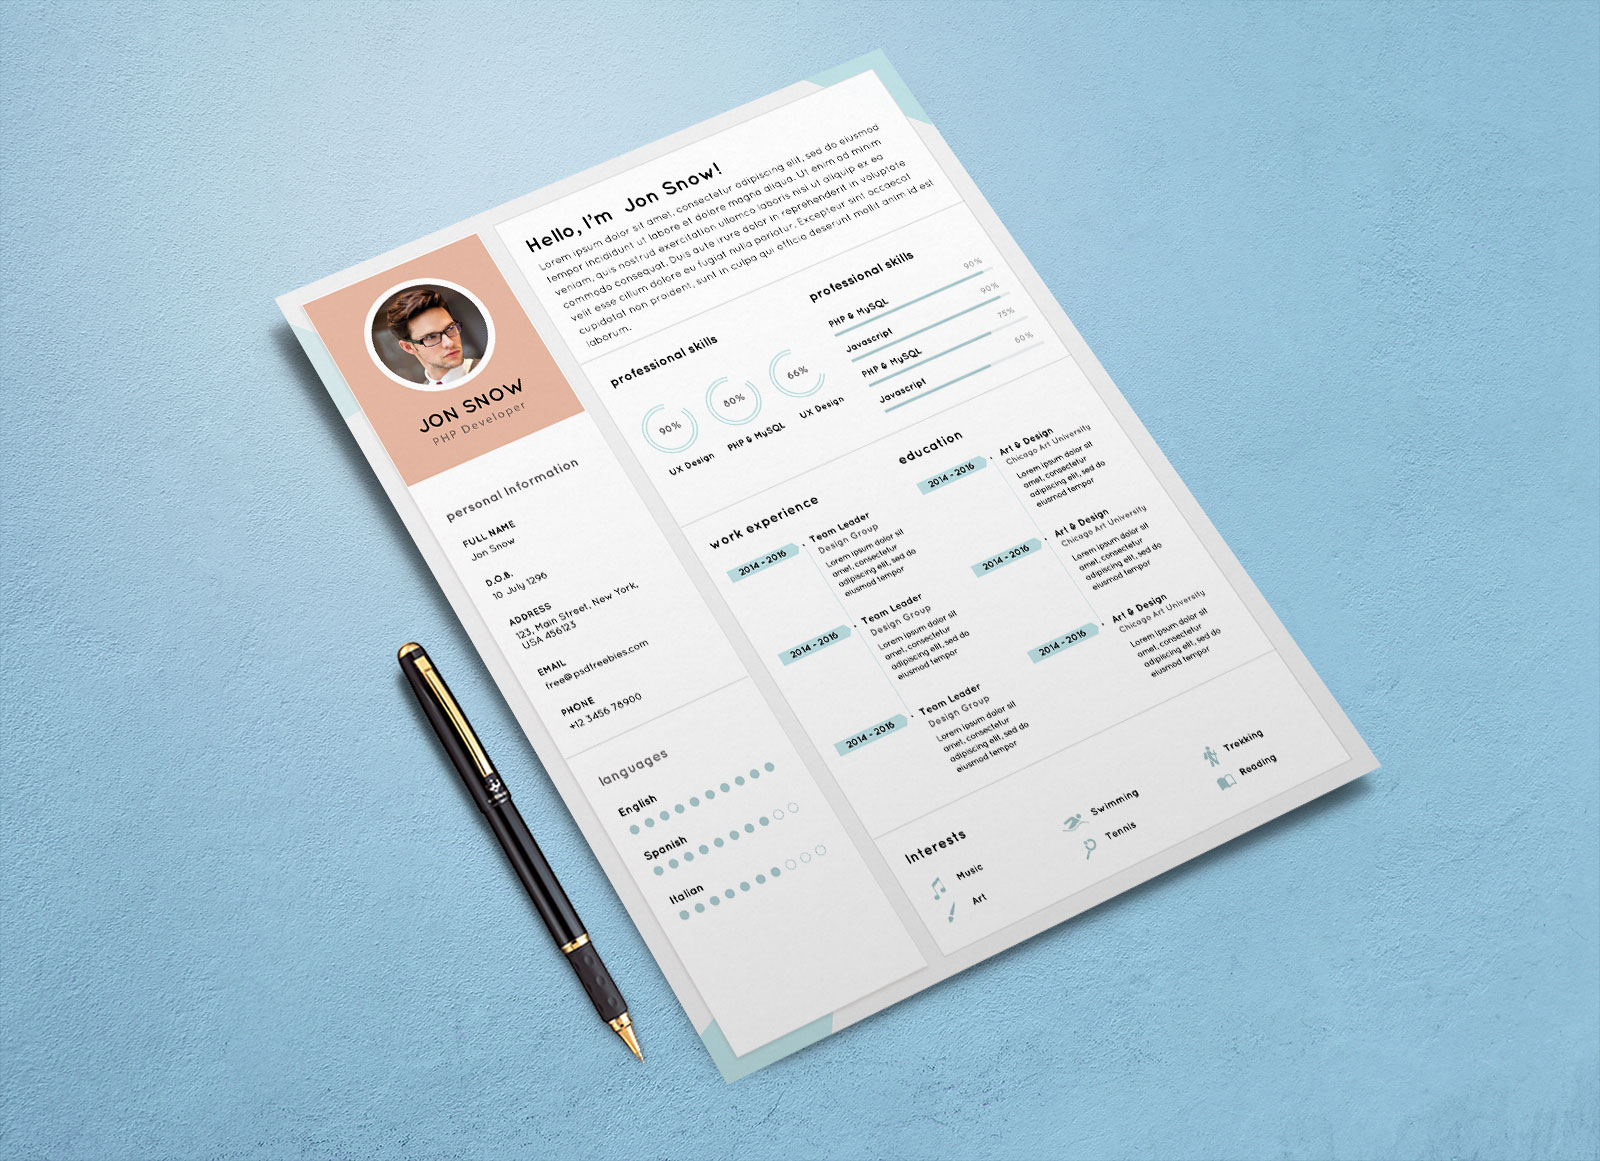 Free-Clean-Resume-CV-Template-PSD-for-PHP-Developer-3